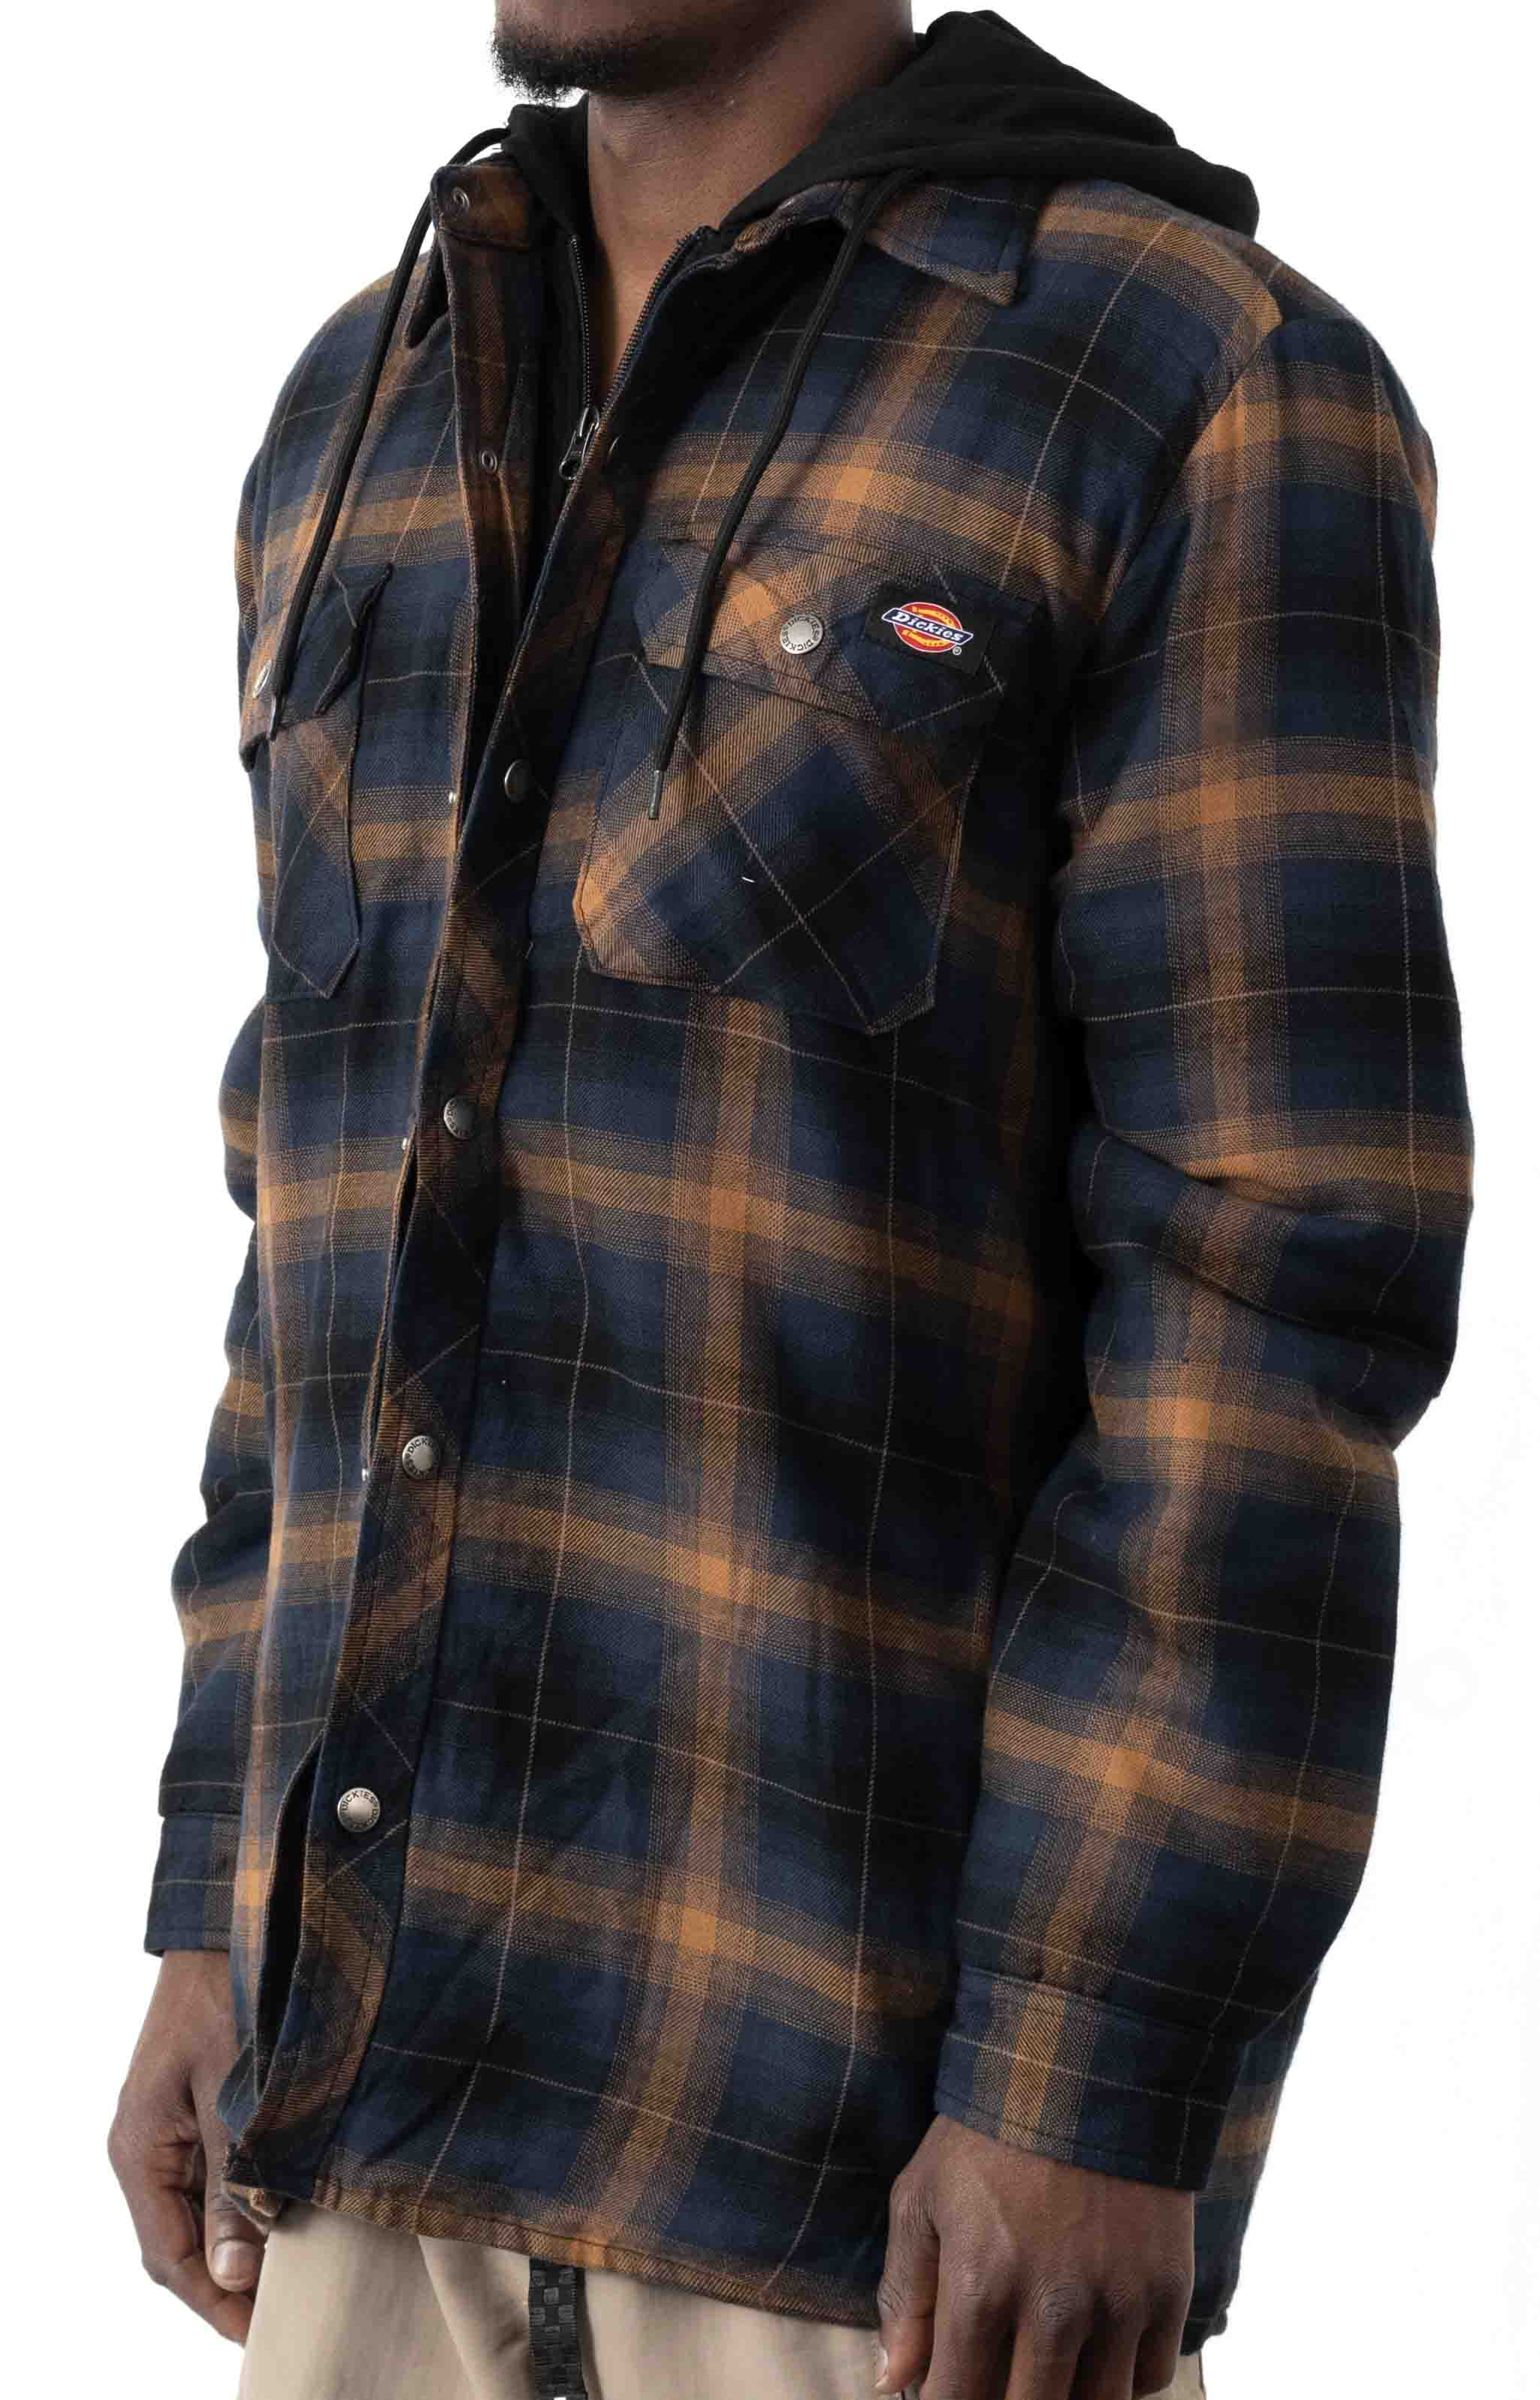 (TJ211IP1) Fleece Hooded Flannel Shirt Jacket with Hydroshield - Ink Navy Brown Ombre Plaid 2